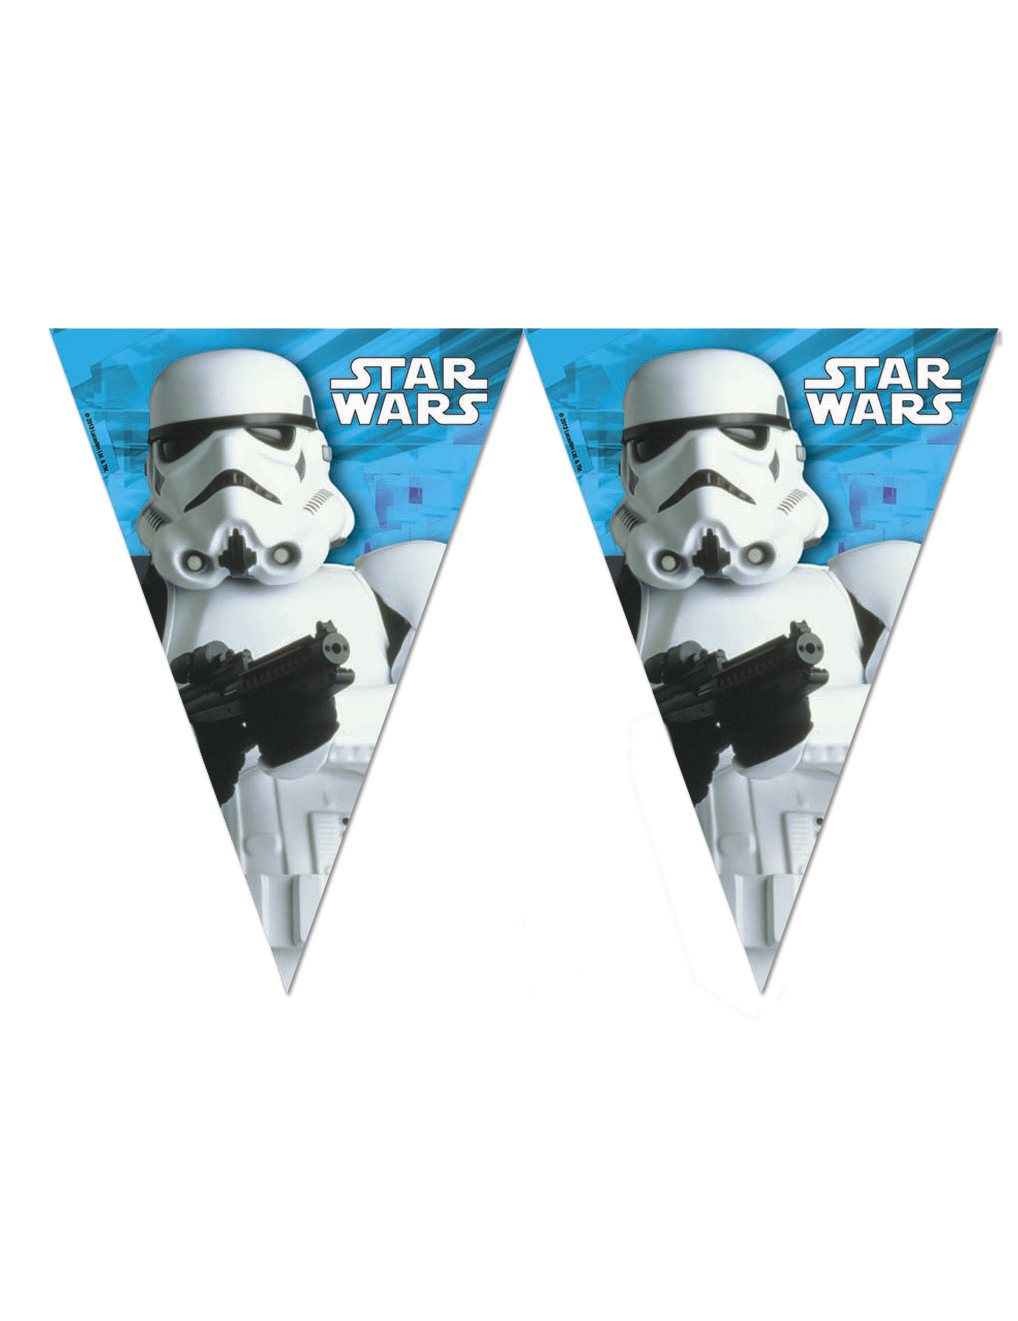 Guirlande fanions stormtrooper star wars d coration anniversaire et f tes th me sur vegaoo party - Deco star wars anniversaire ...